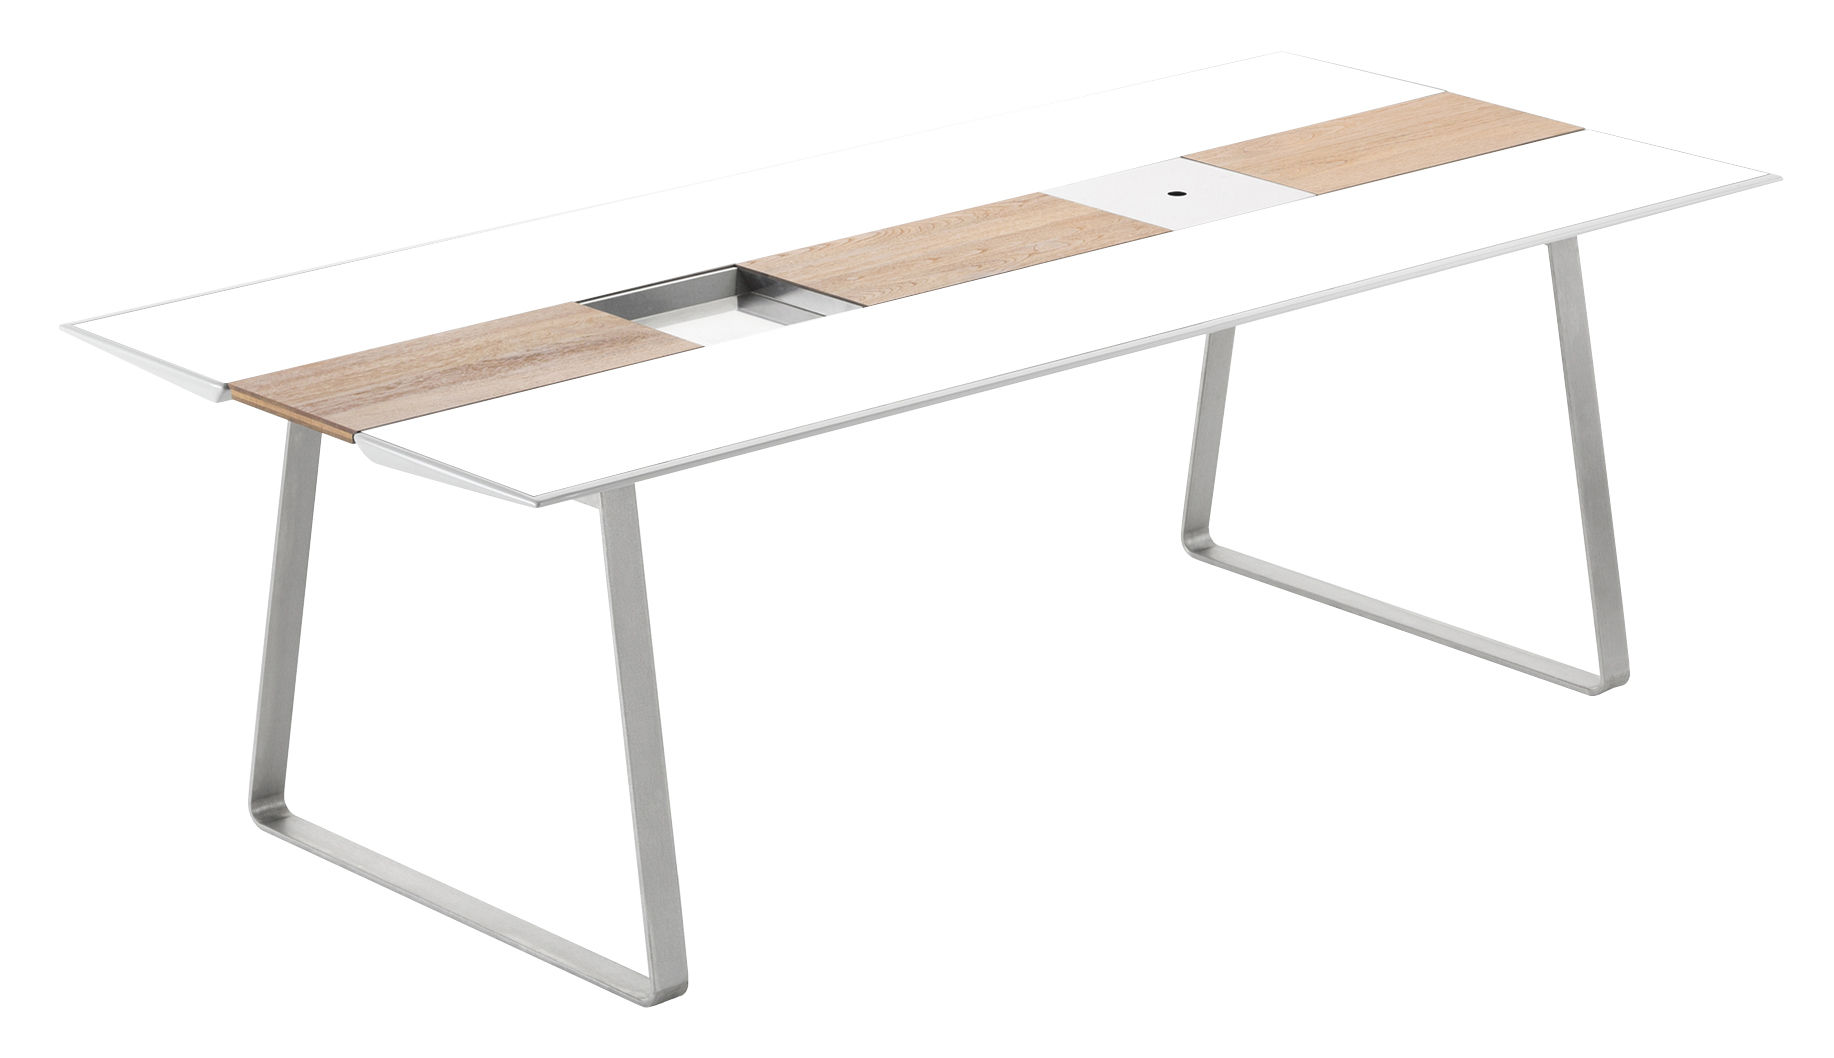 Outdoor - Garden Tables - Extrados Rectangular table by EGO Paris - White top / Centerpiece teak and white - Brushed stainless steel, Corian, Teak